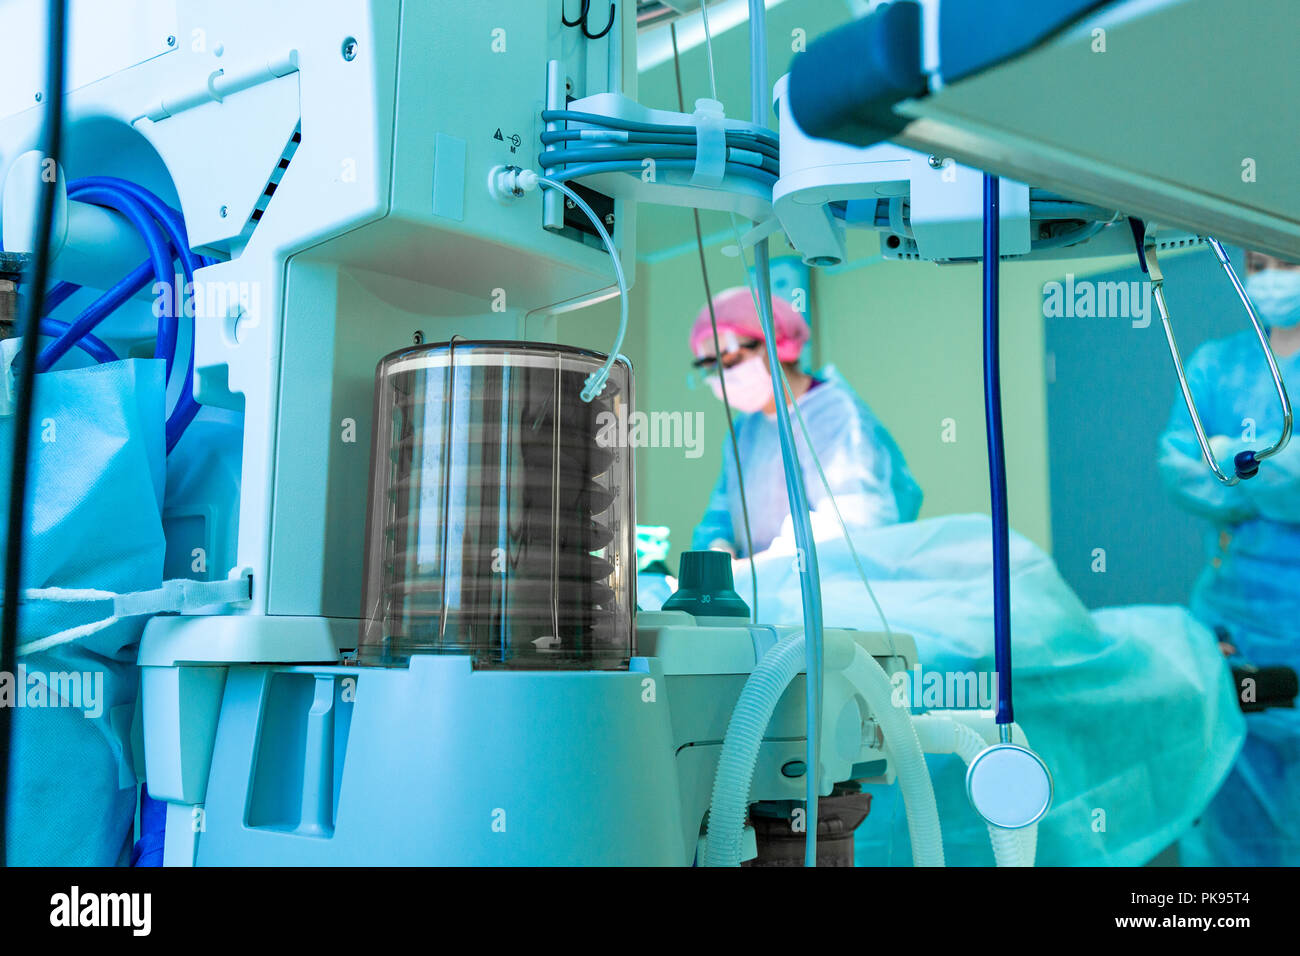 Fragment of breathing apparatus in the operating room, blurred background with team surgeon at work in hospital during their work. - Stock Image